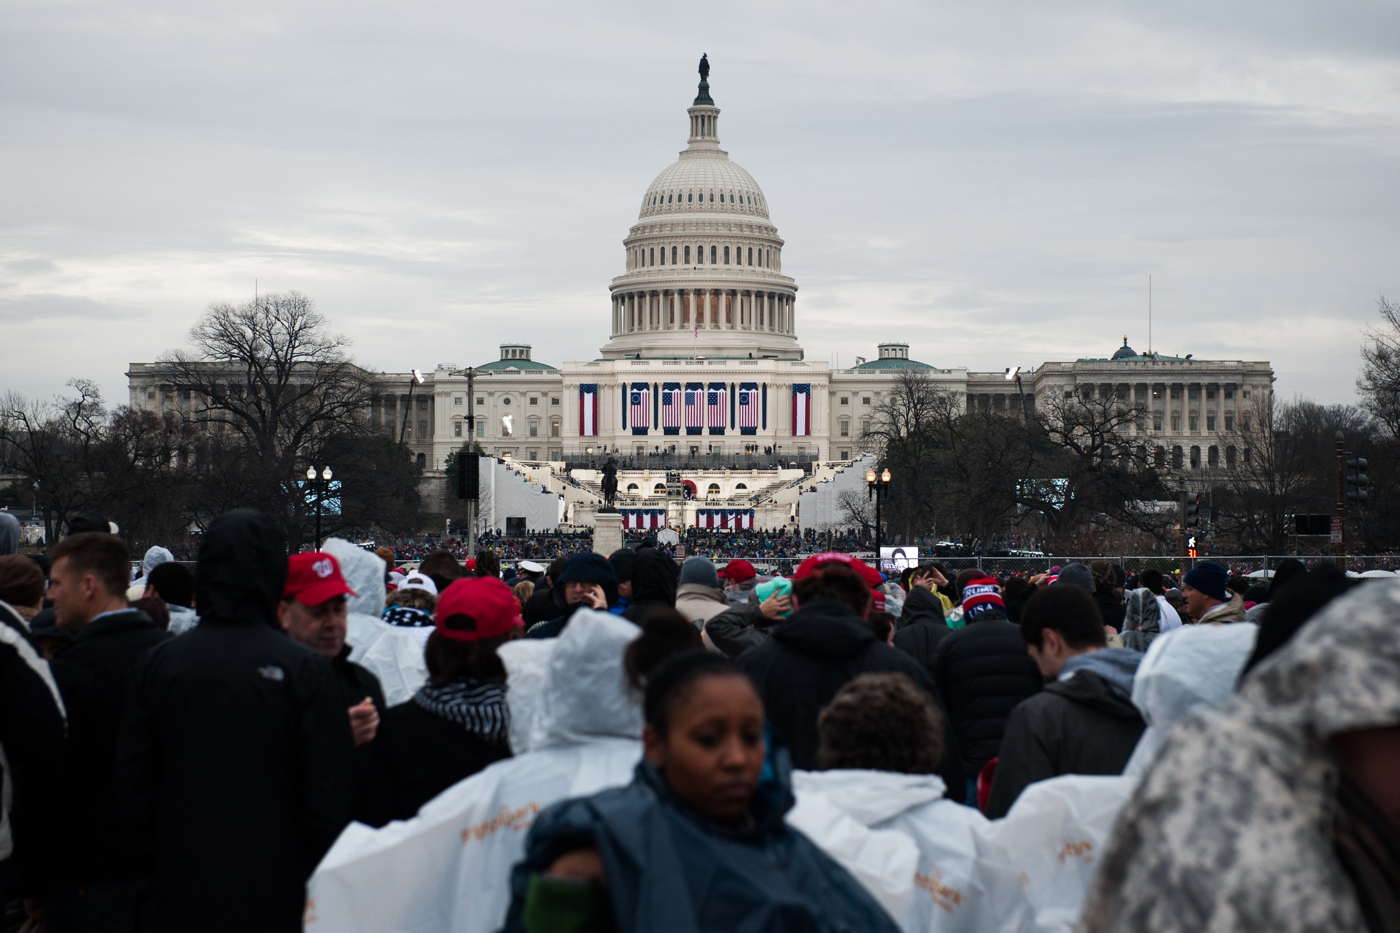 The U.S. Capitol Building is seen on the day of President Donald Trump's inauguration as the 45th President of the United States in Washington, D.C., on January 20, 2017. Credit: Mark Kauzlarich for CNN